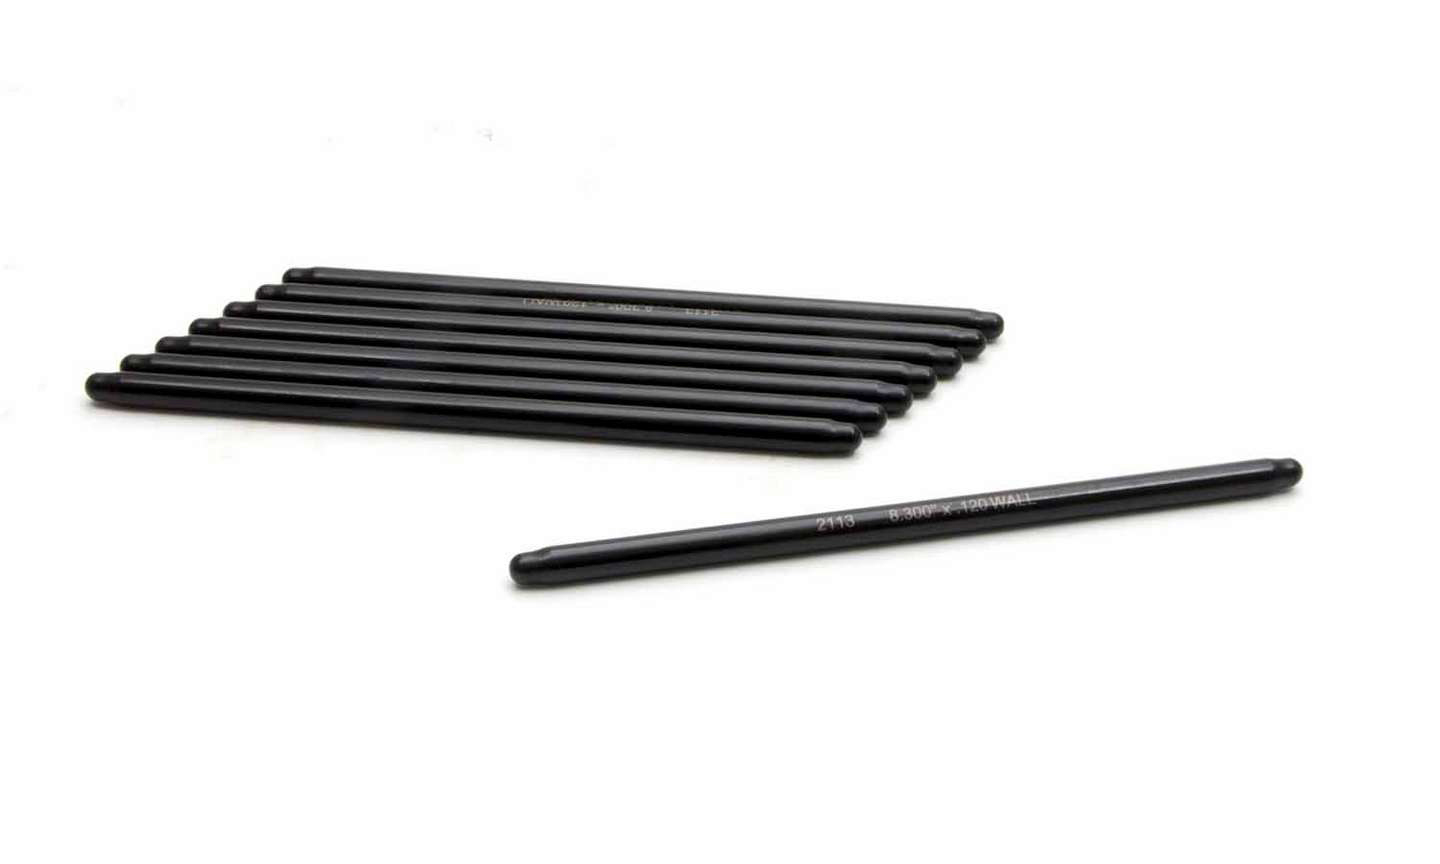 Manley 3/8 .135 Wall Moly Pushrods - 8.300 Long